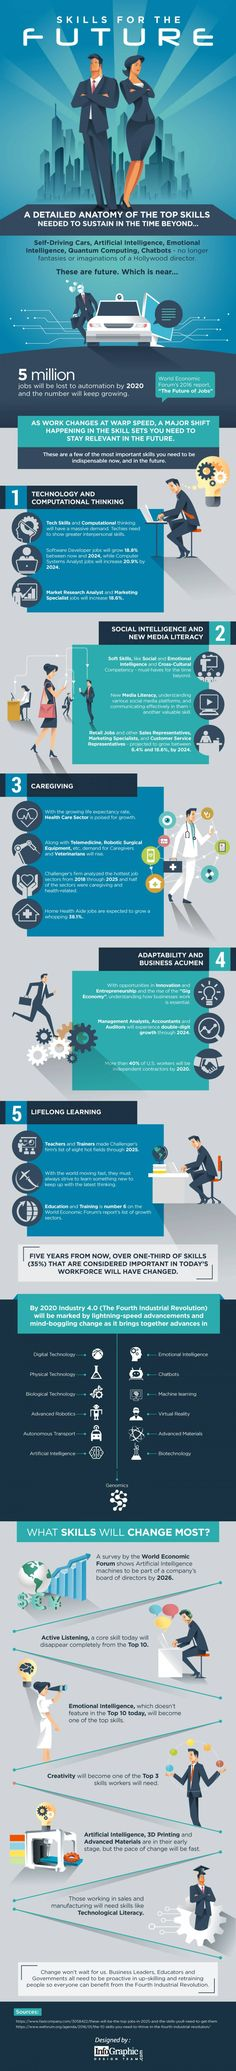 Skills for the Future - #infographic